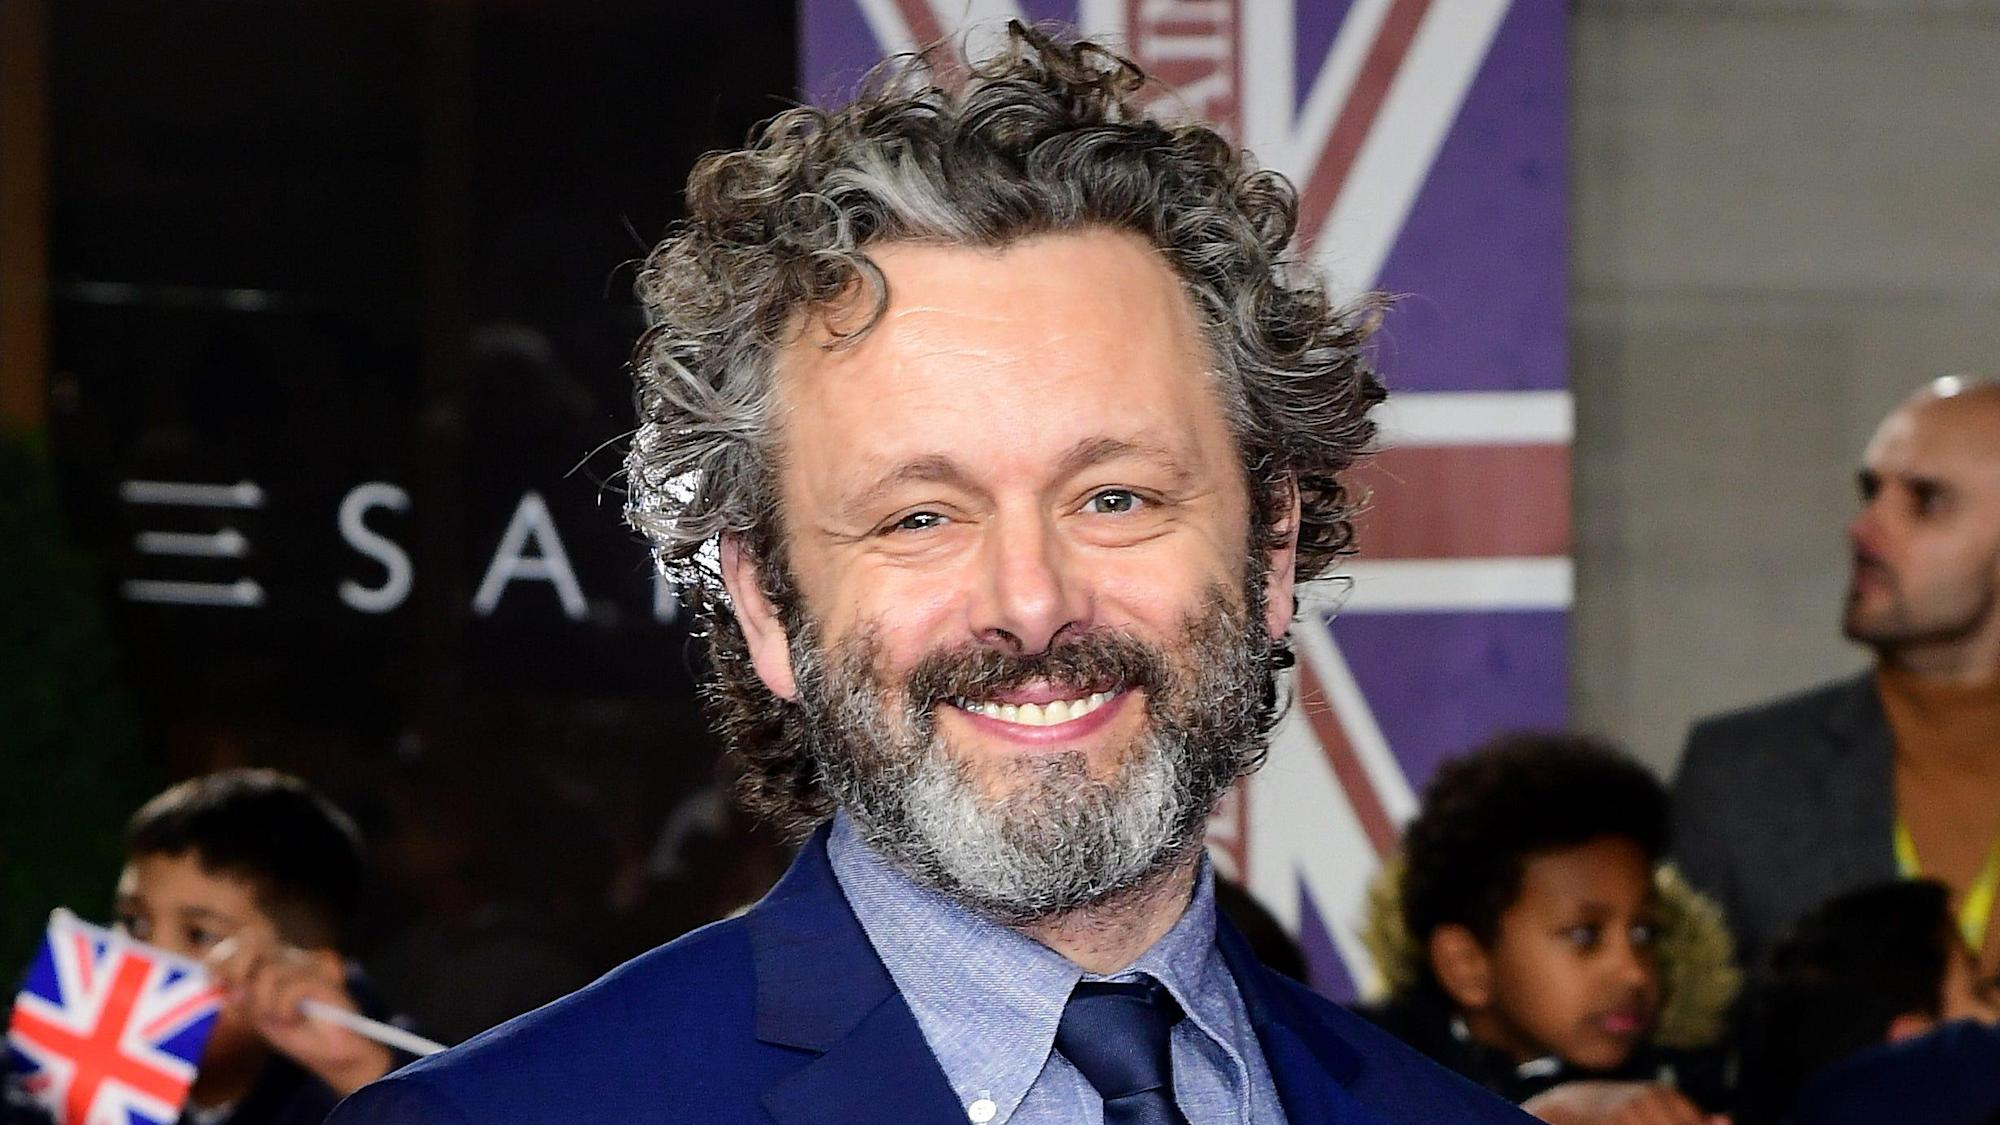 Oxford bursary scheme named after Michael Sheen will support Welsh students